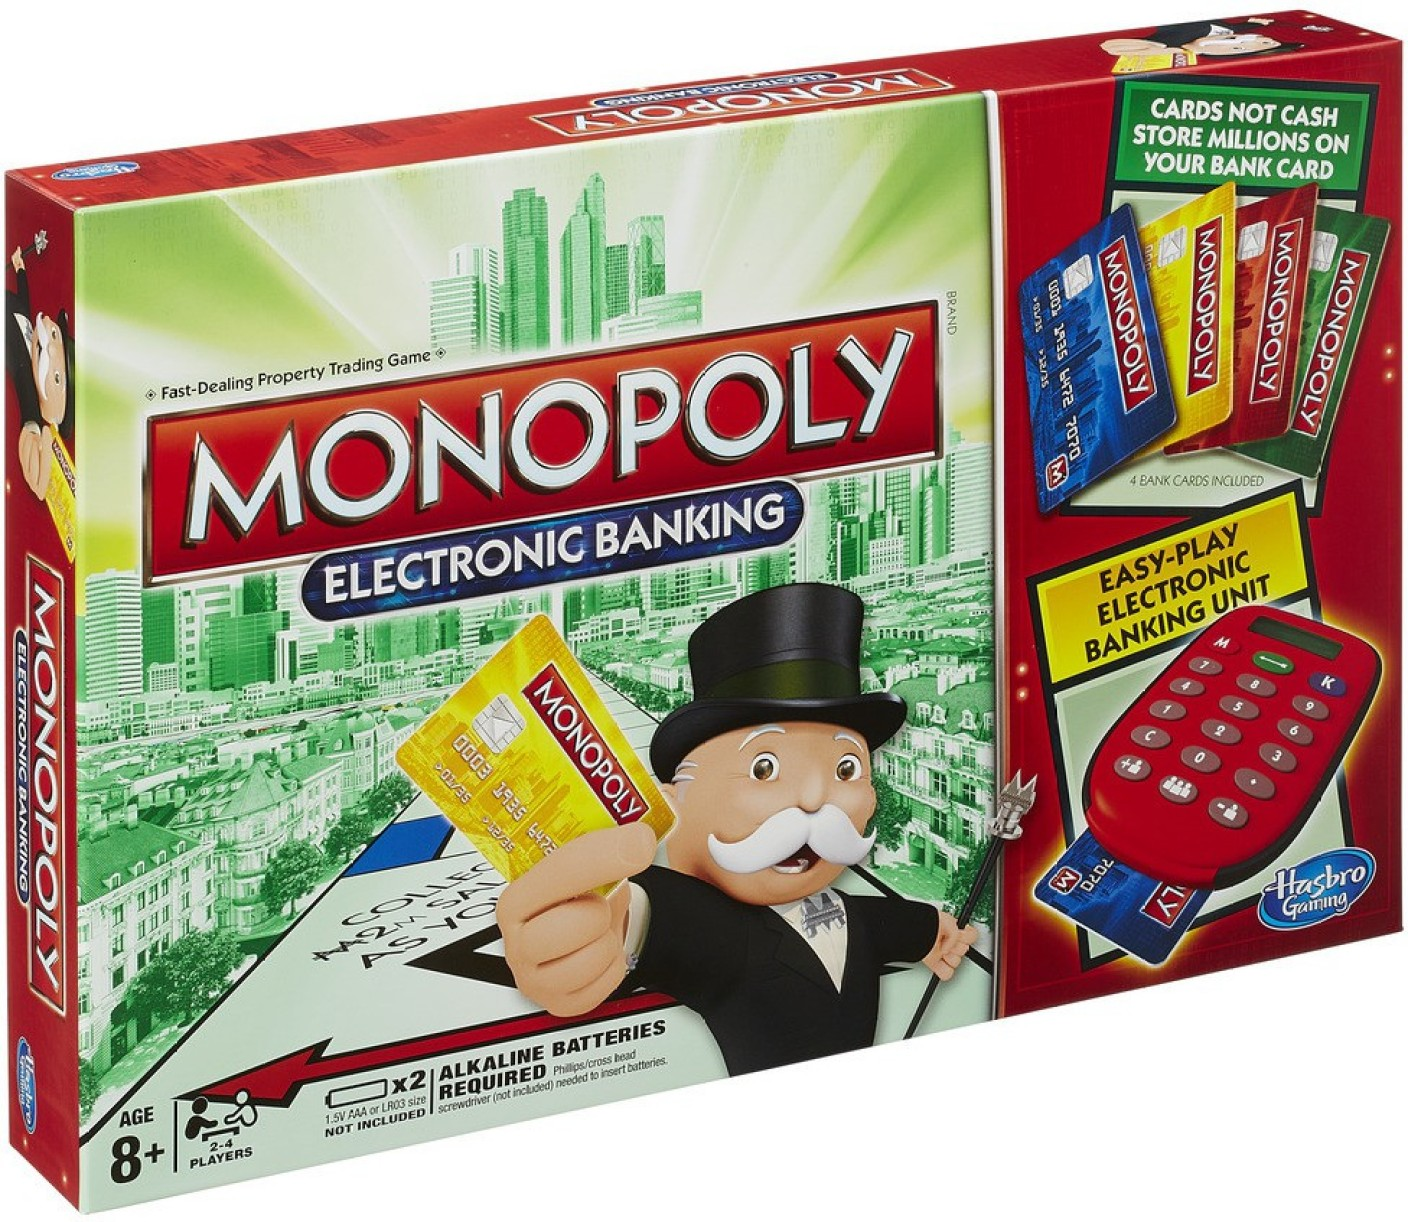 Hasbro gaming monopoly electronic banking game board game add to cart